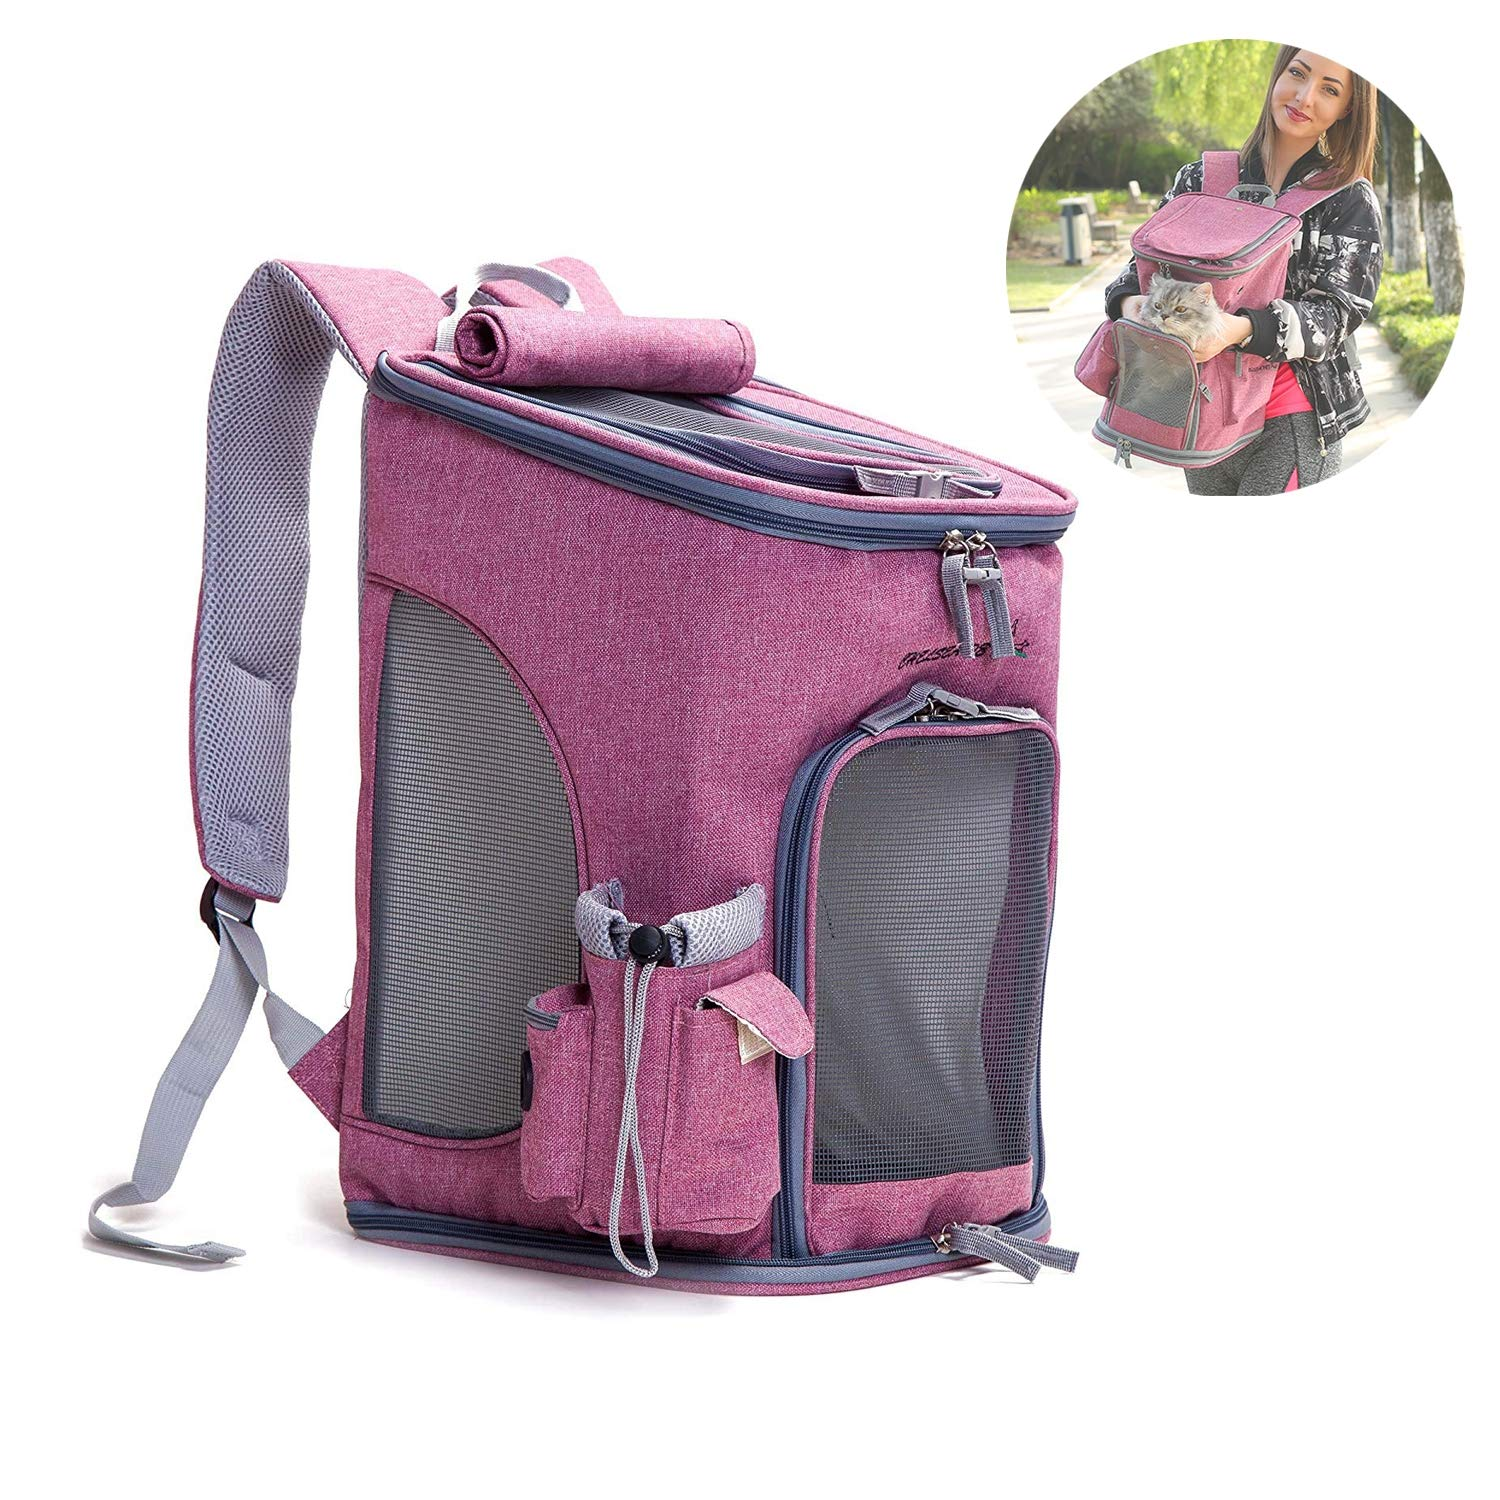 b2416ebb95 Amazon.com: Pet Carrier Backpack Dog Travel Bag,Top Opening Mesh Soft-sided Strap  Dogs Cats Carrier Foldable Outdoor Travel Double Shoulder Bags,Gray, ...